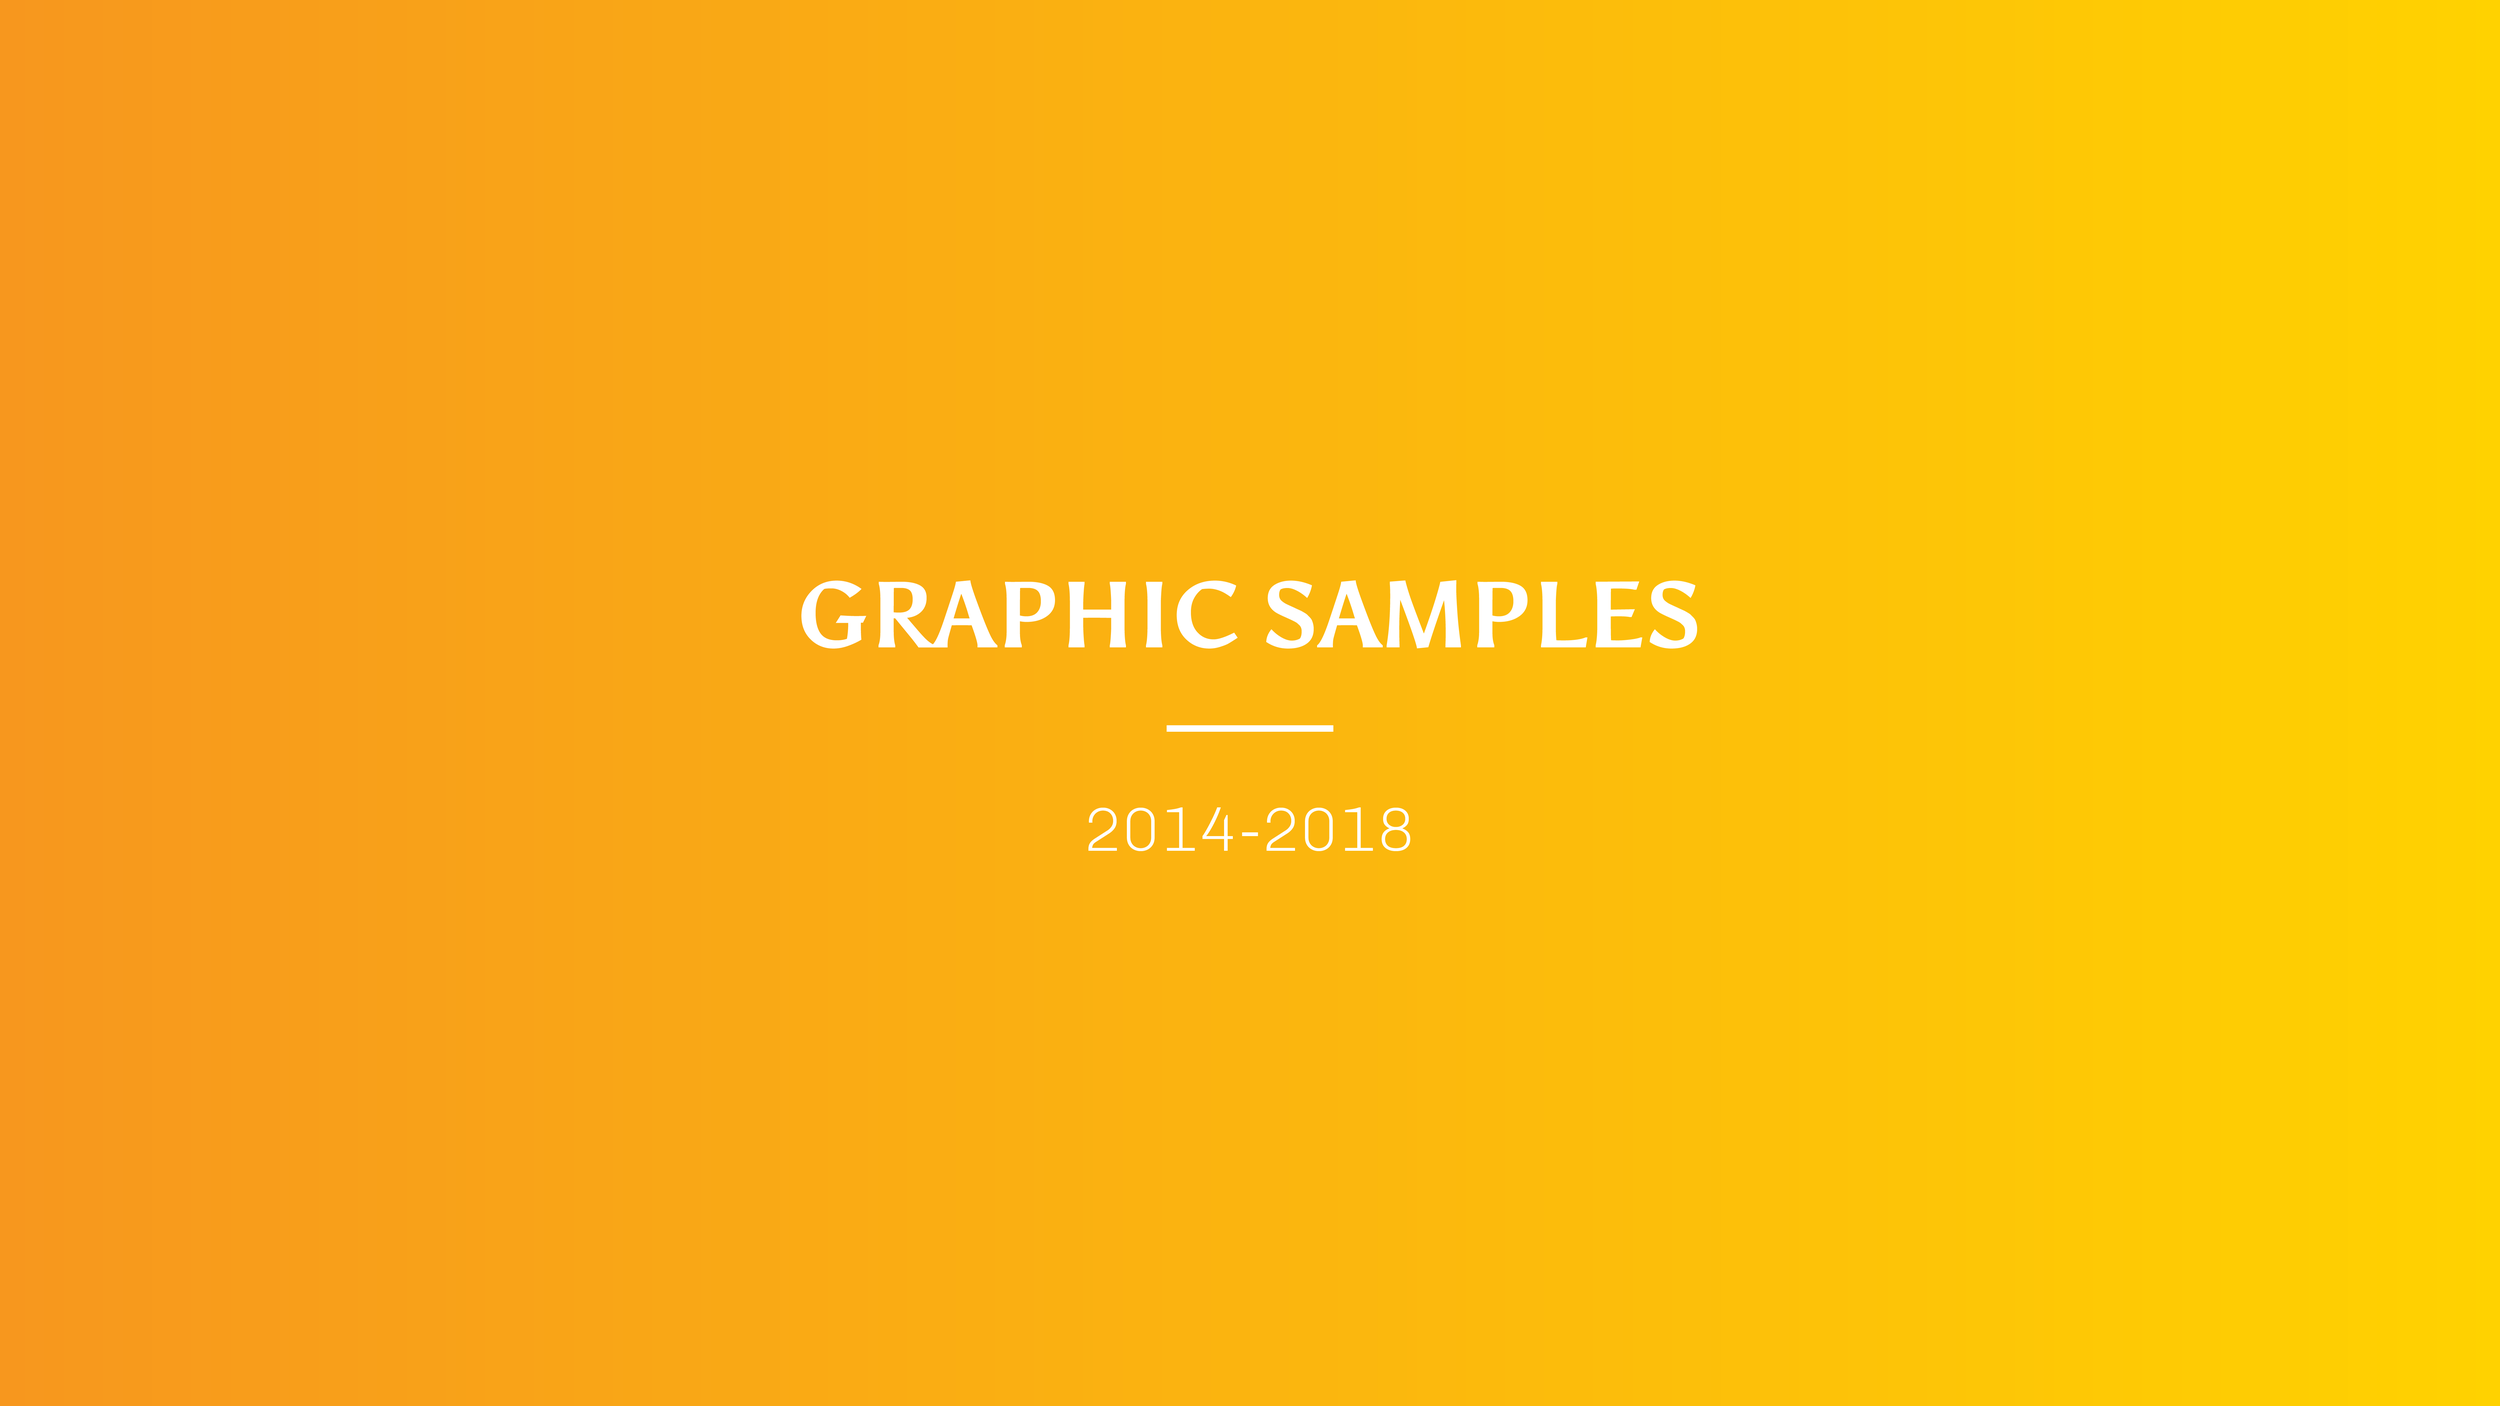 010219 SAMPLES_HERO-01.png